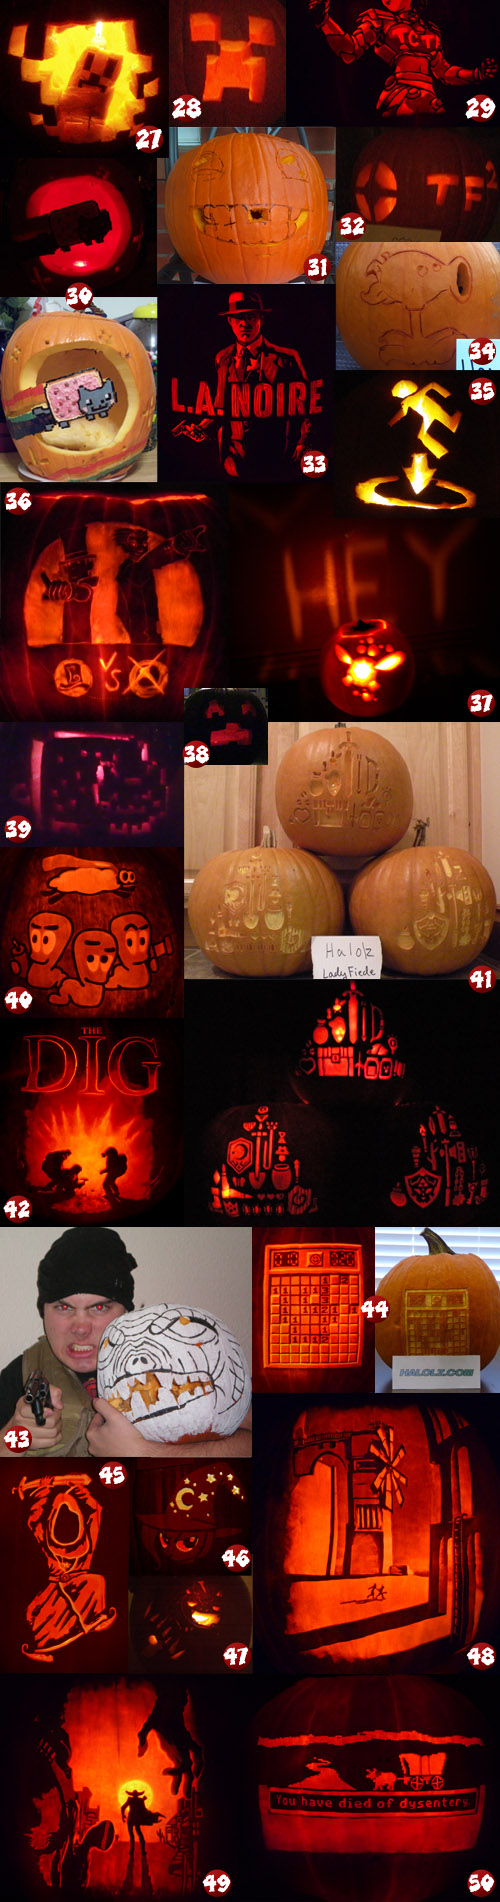 Halolz 2011 Halolzween Pumpkin Carving Contest Entries Page 2